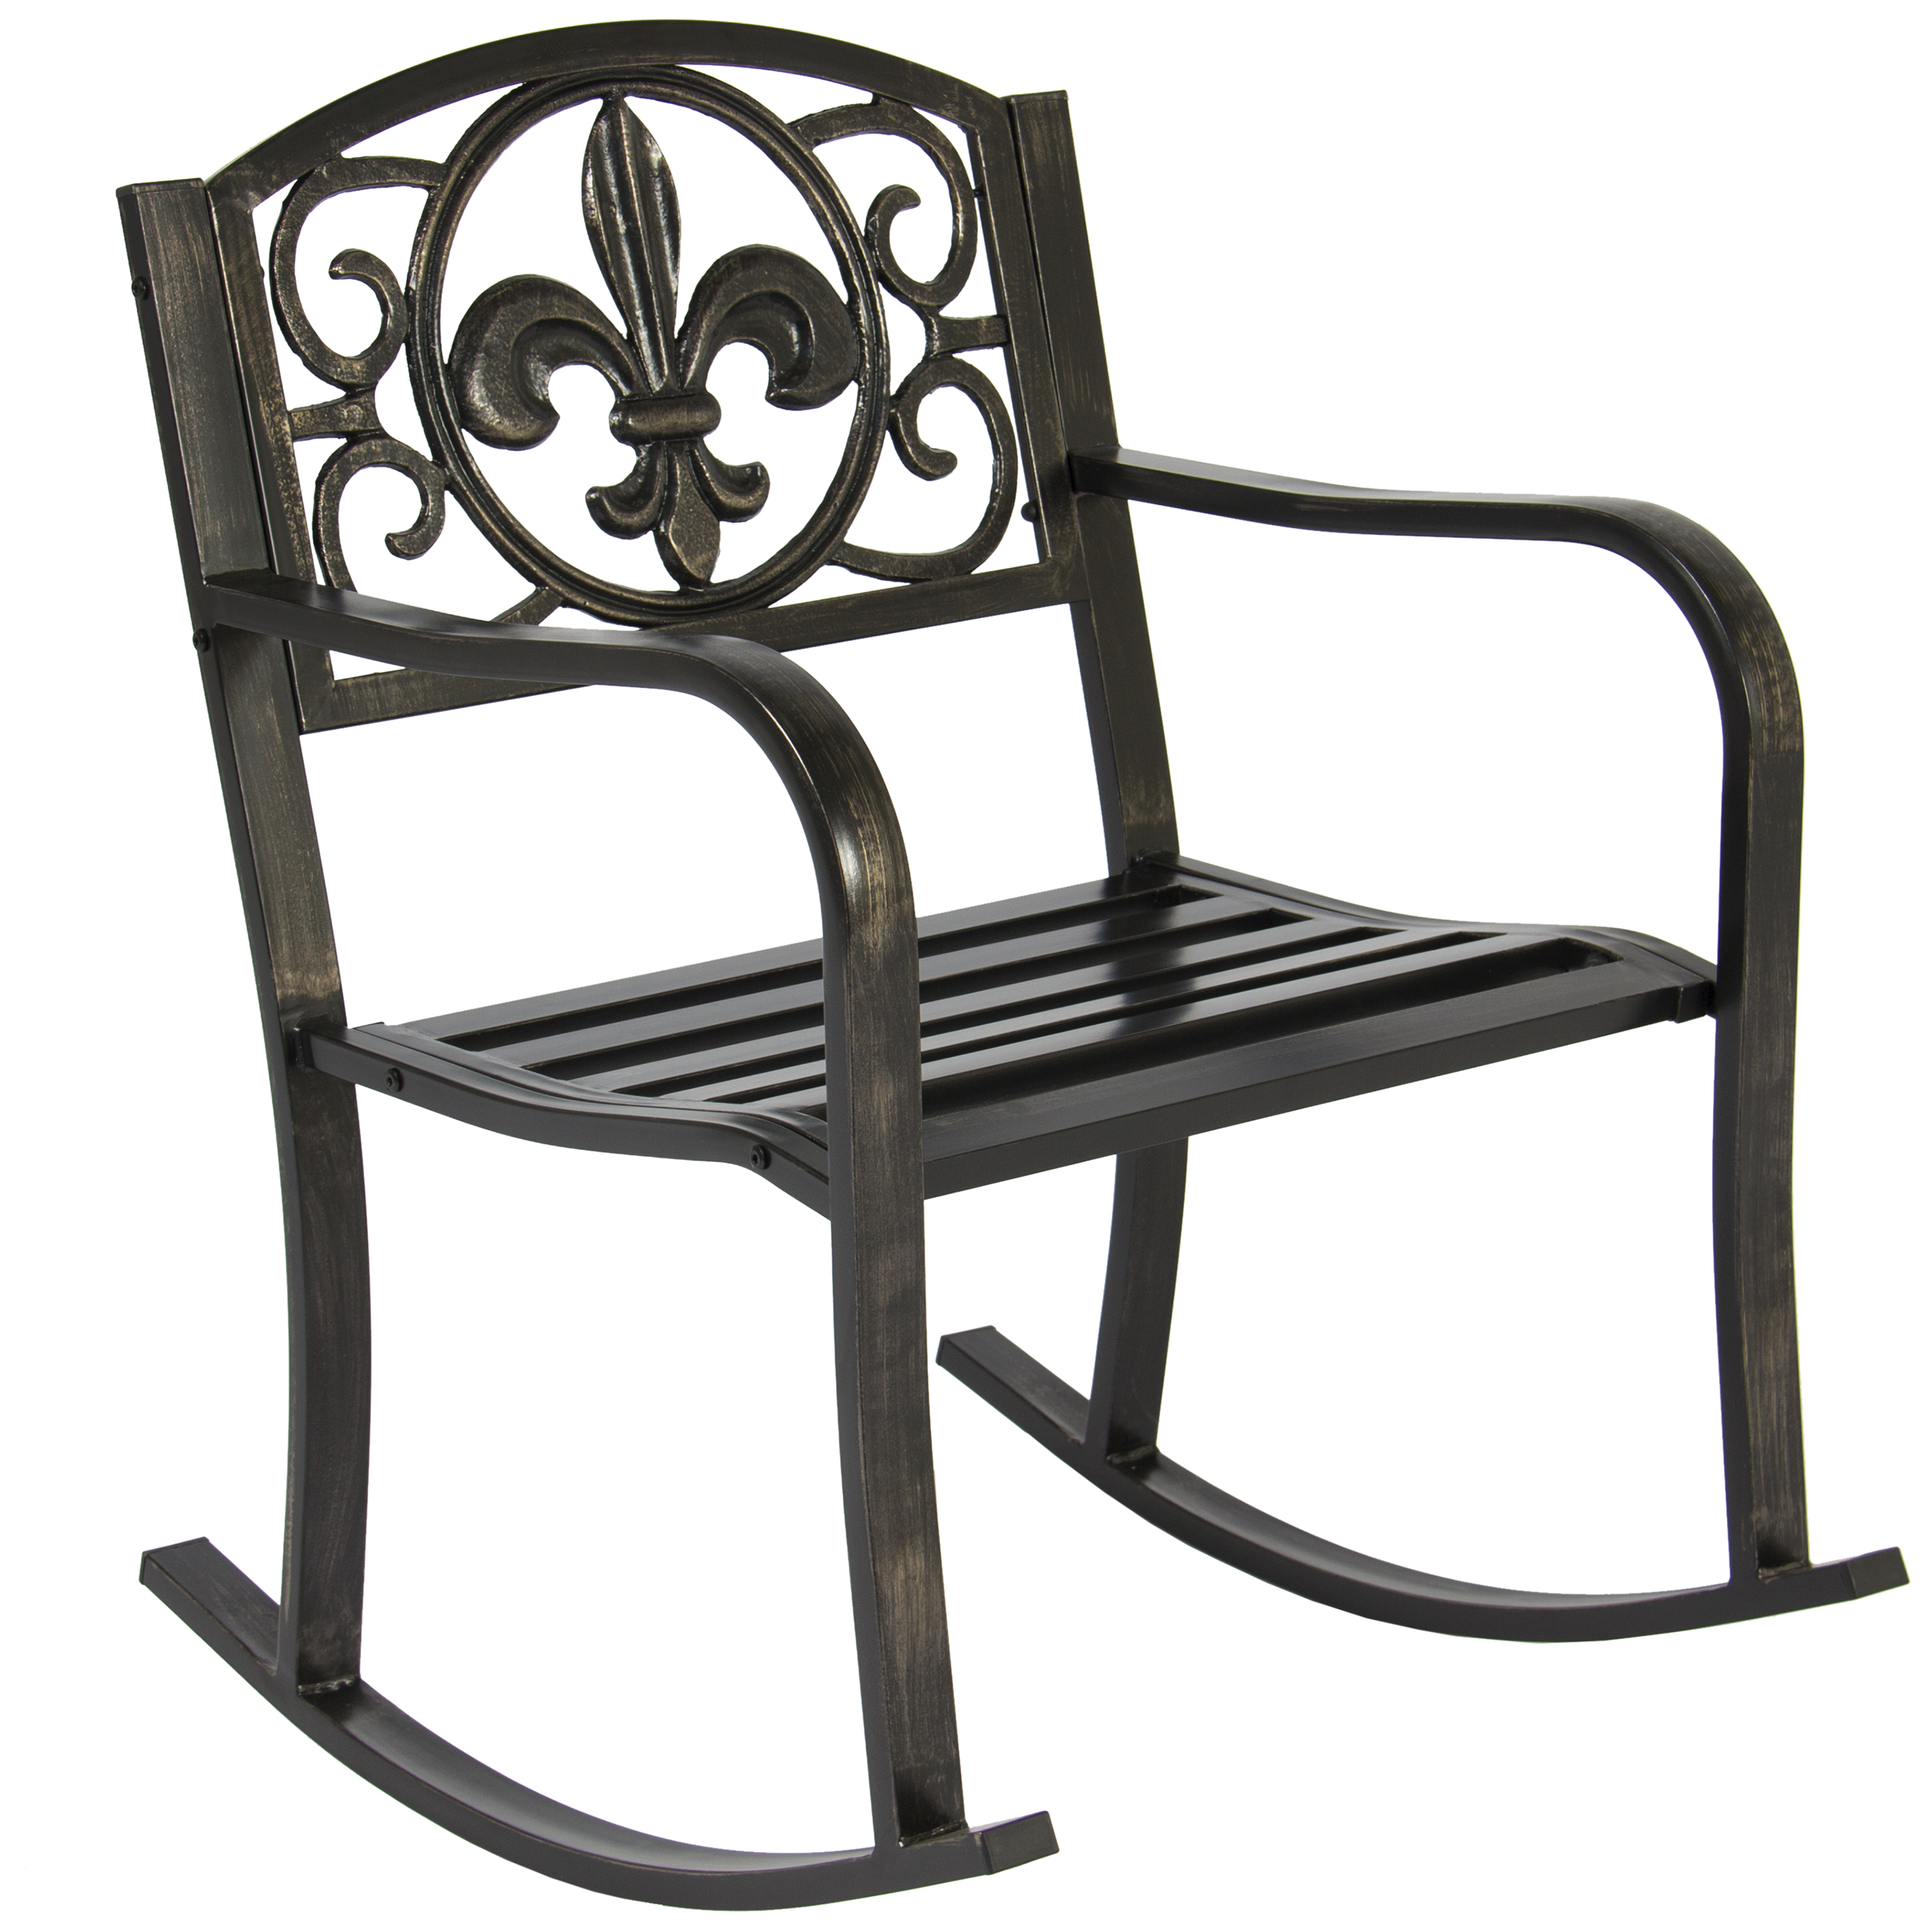 Best Choice Products Metal Rocking Chair Seat For Patio, Porch, Deck,  Outdoor W